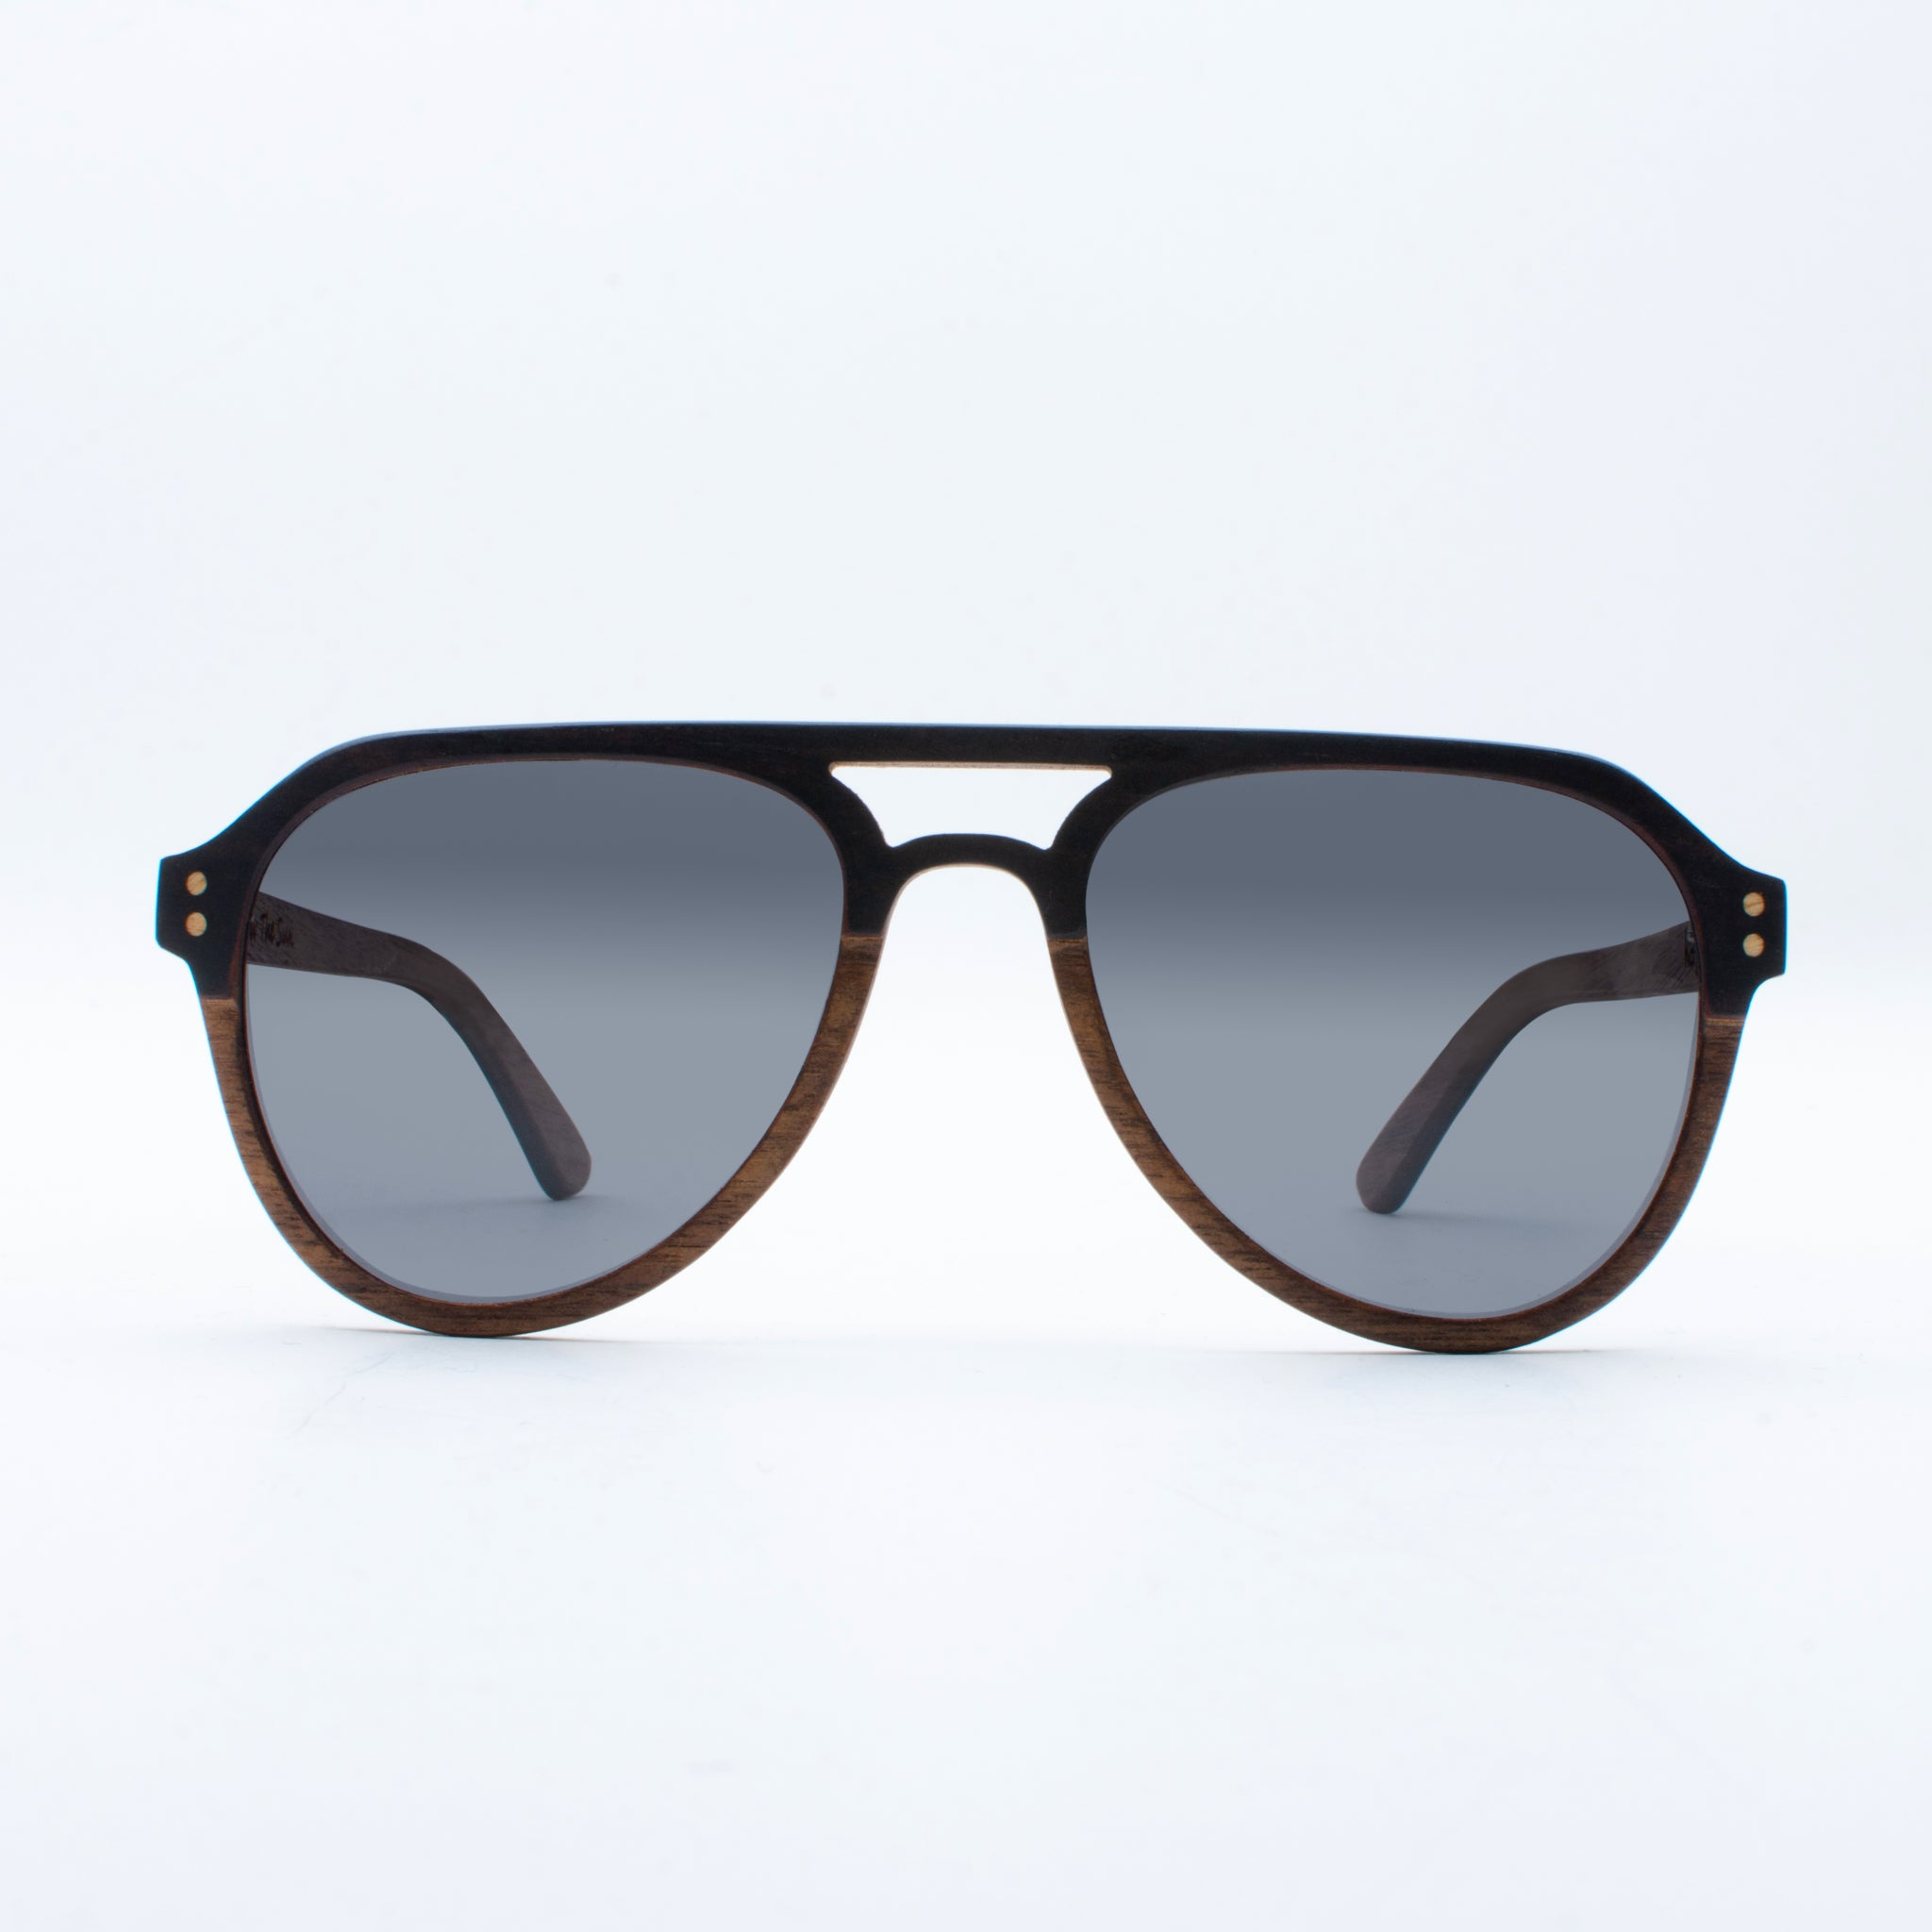 WOODEN SUNGLASSES KAYOA EBONY WALNUT SUKI